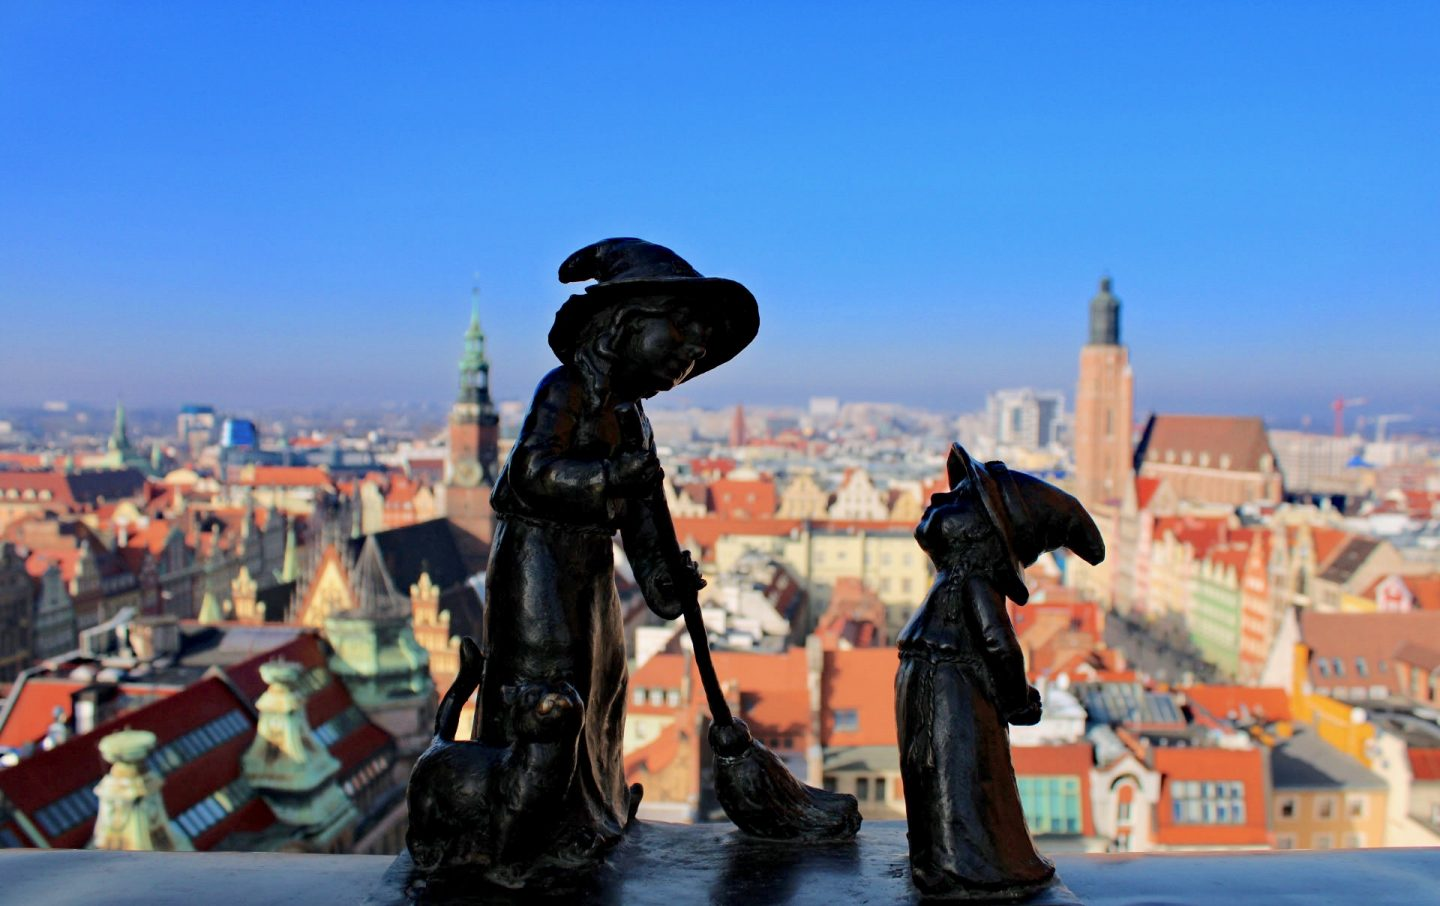 things to do in Wrocław: a small statue of a witch, with views of wroclaw in the background